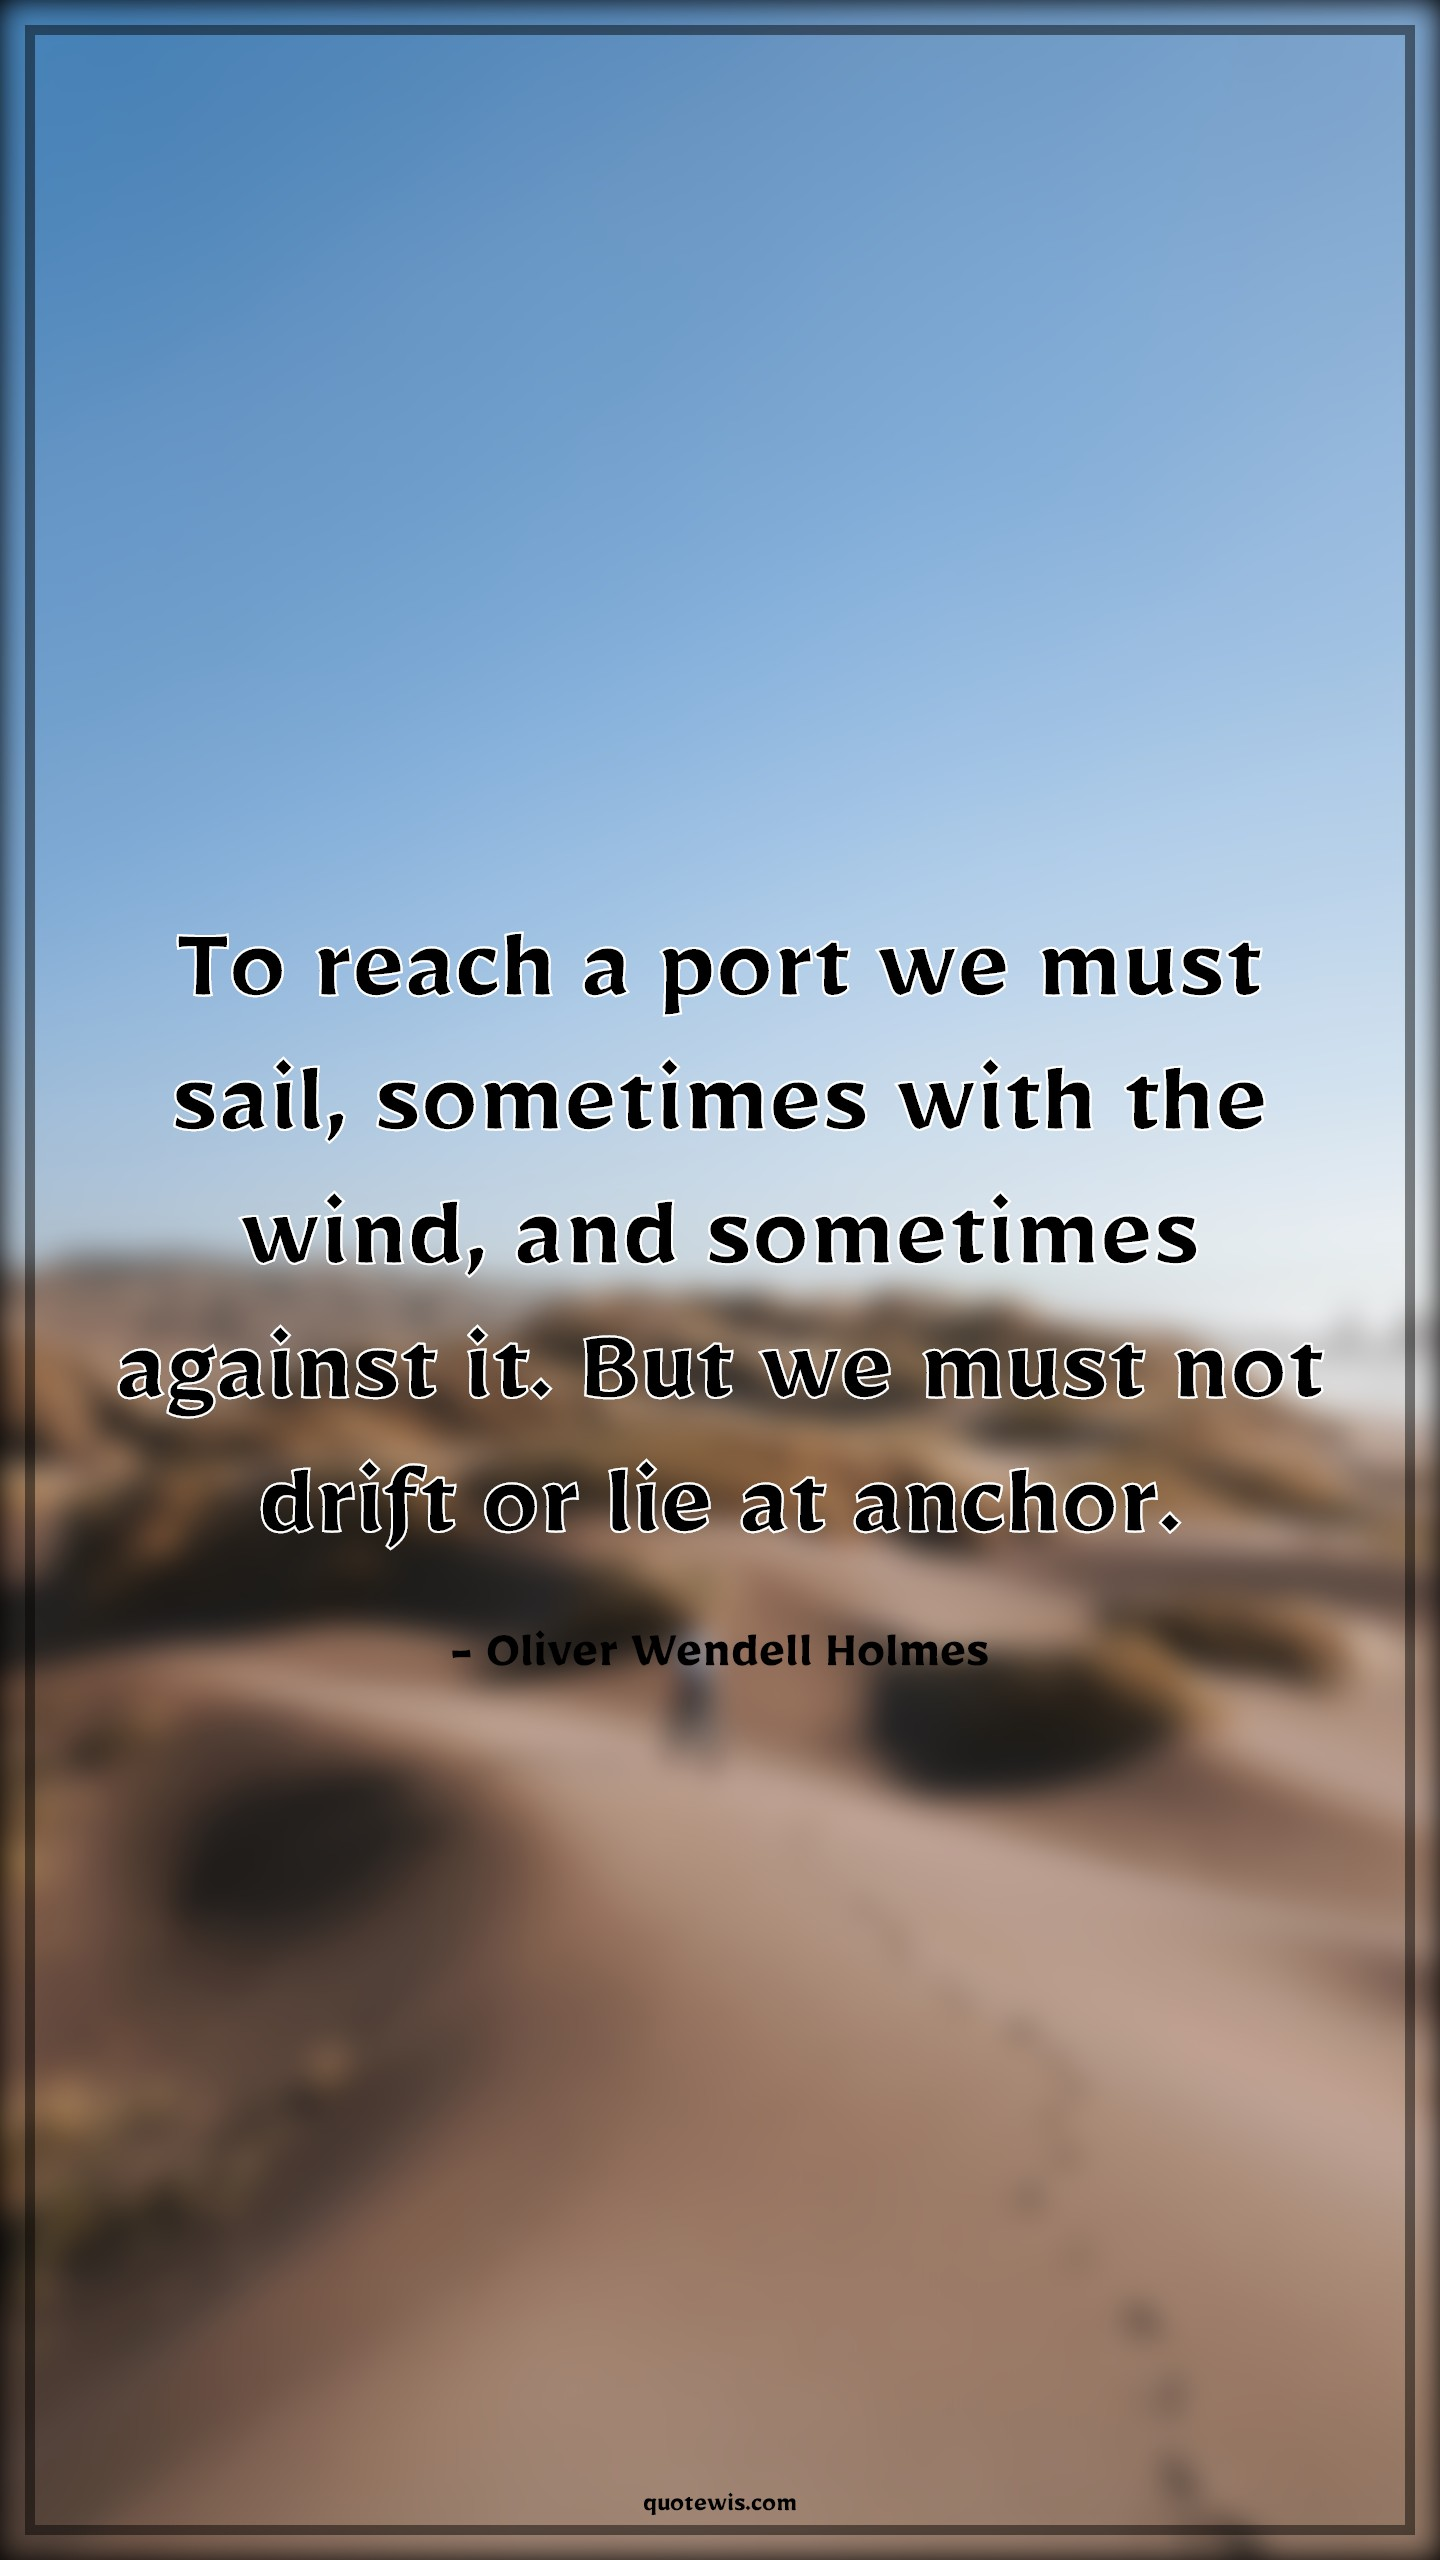 To reach a port we must sail, sometimes with the wind, and sometimes against it. But we must not drift or lie at anchor.